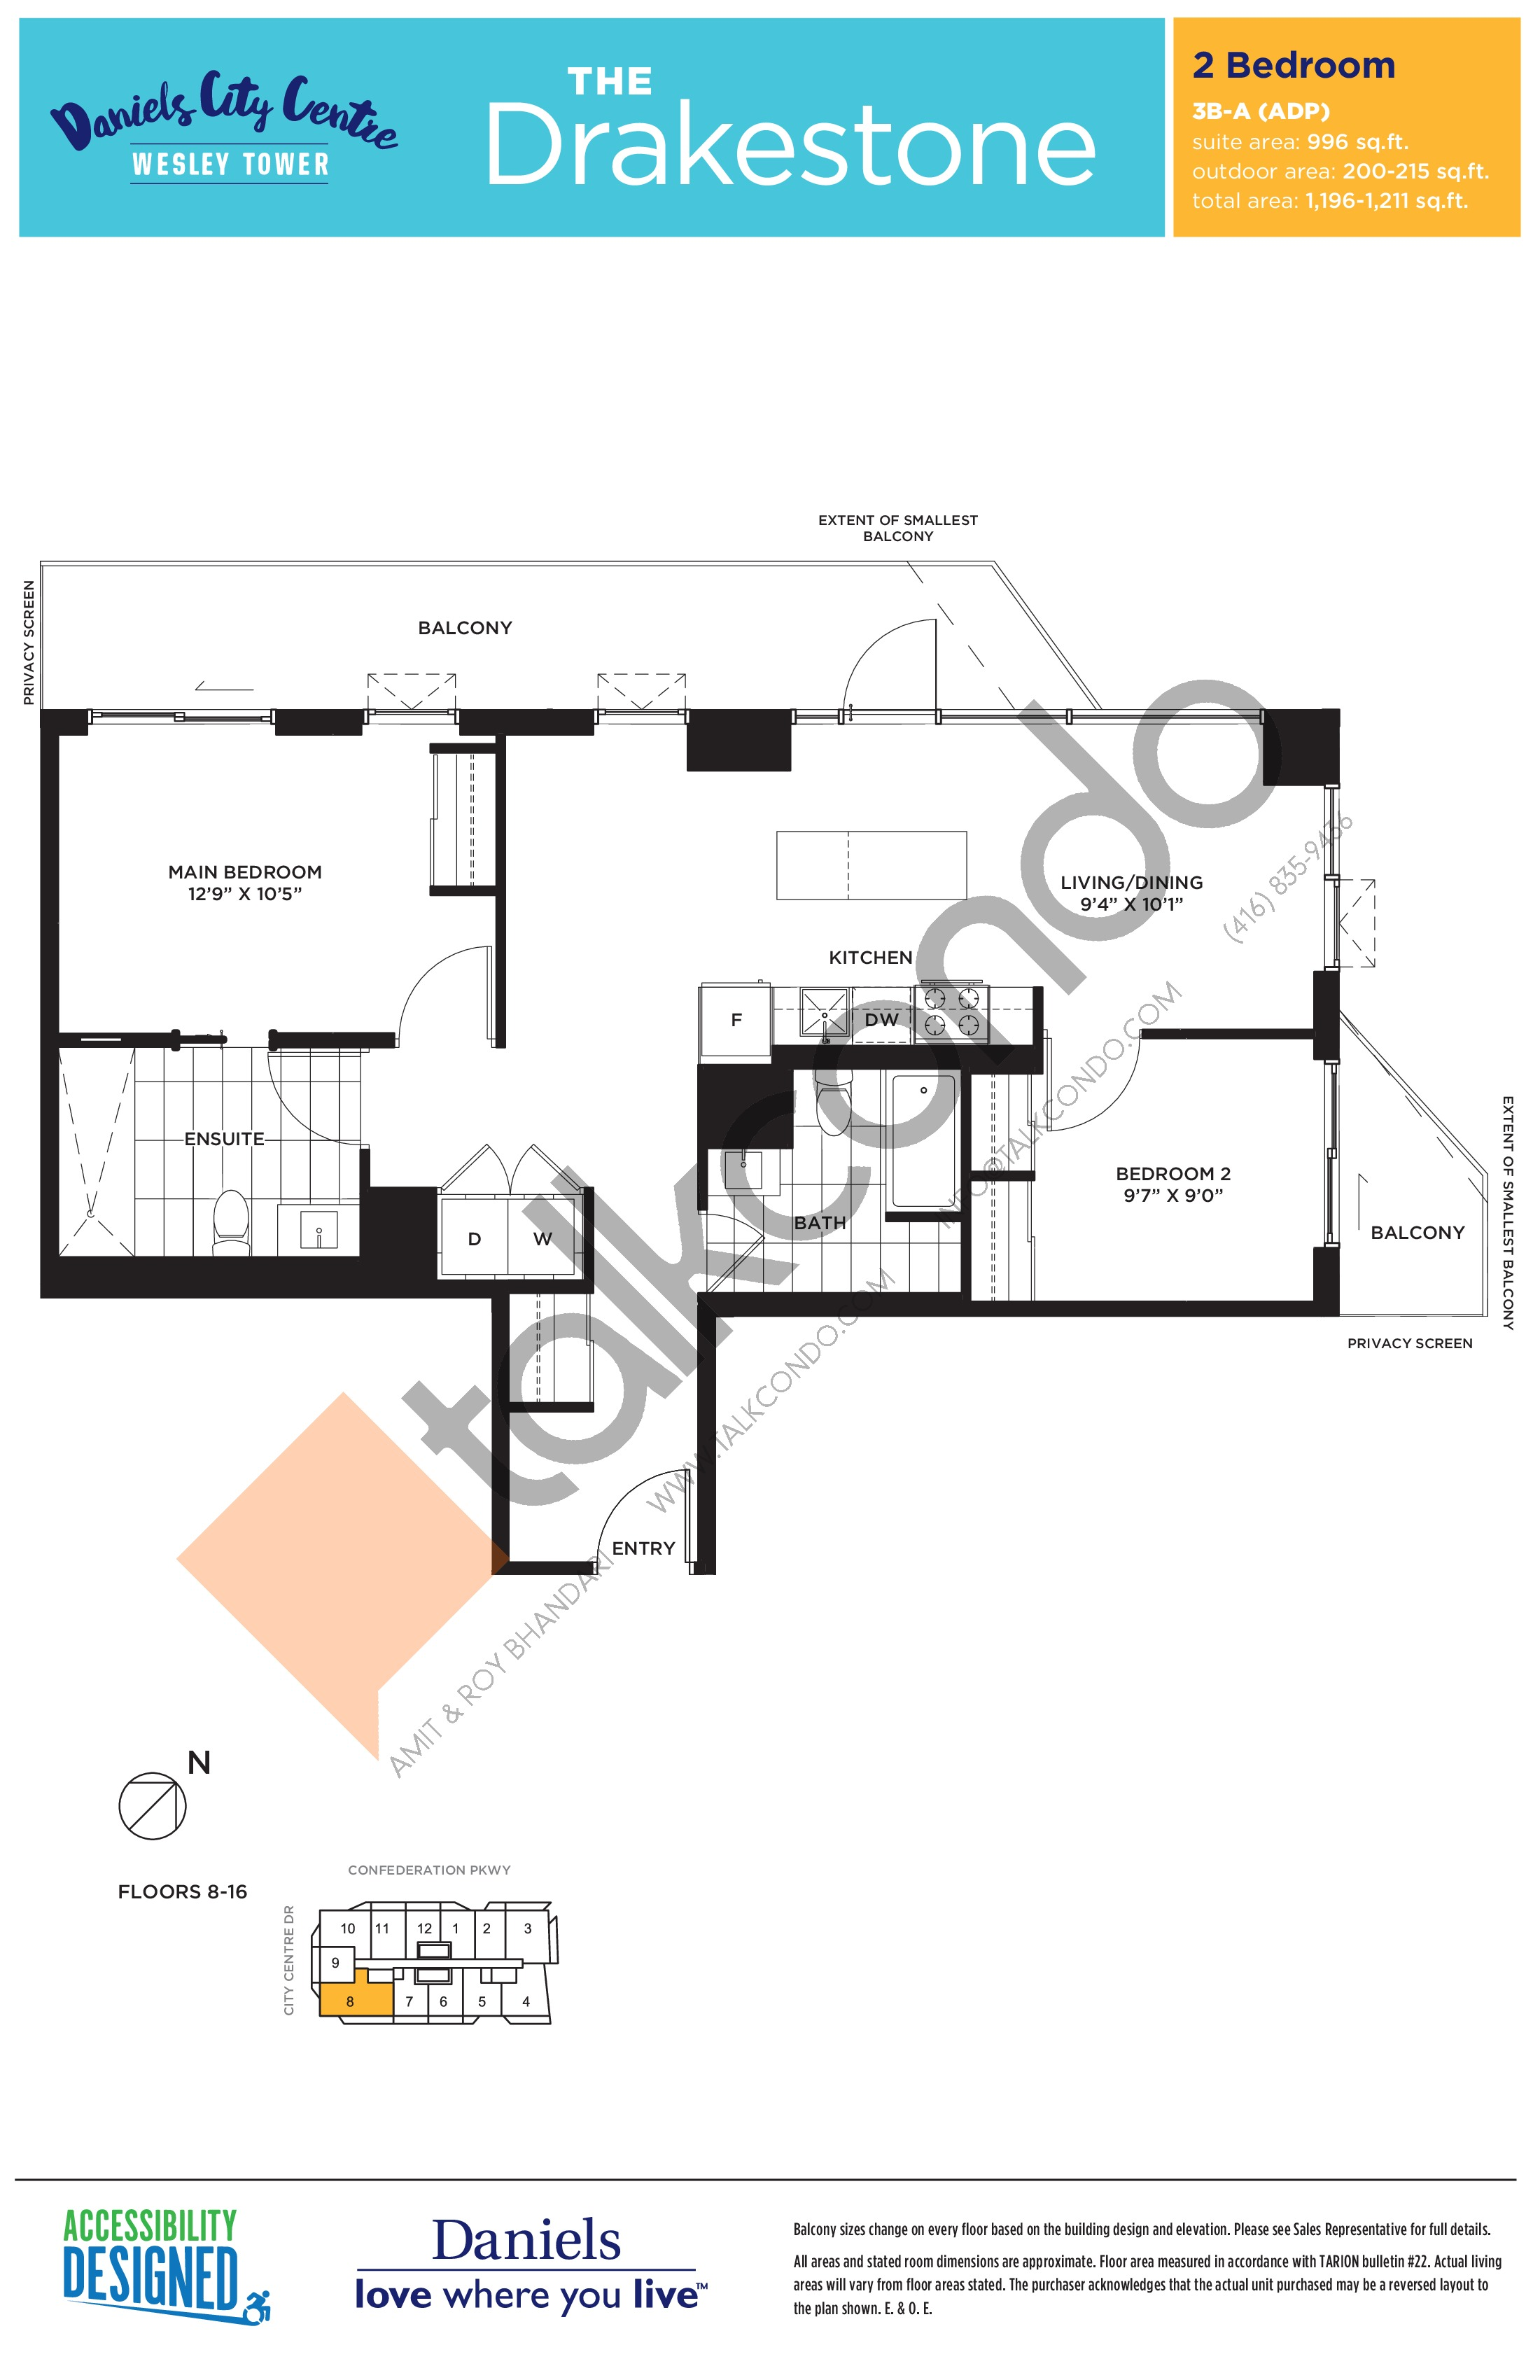 The Drakestone Floor Plan at The Wesley Tower at Daniels City Centre Condos - 996 sq.ft